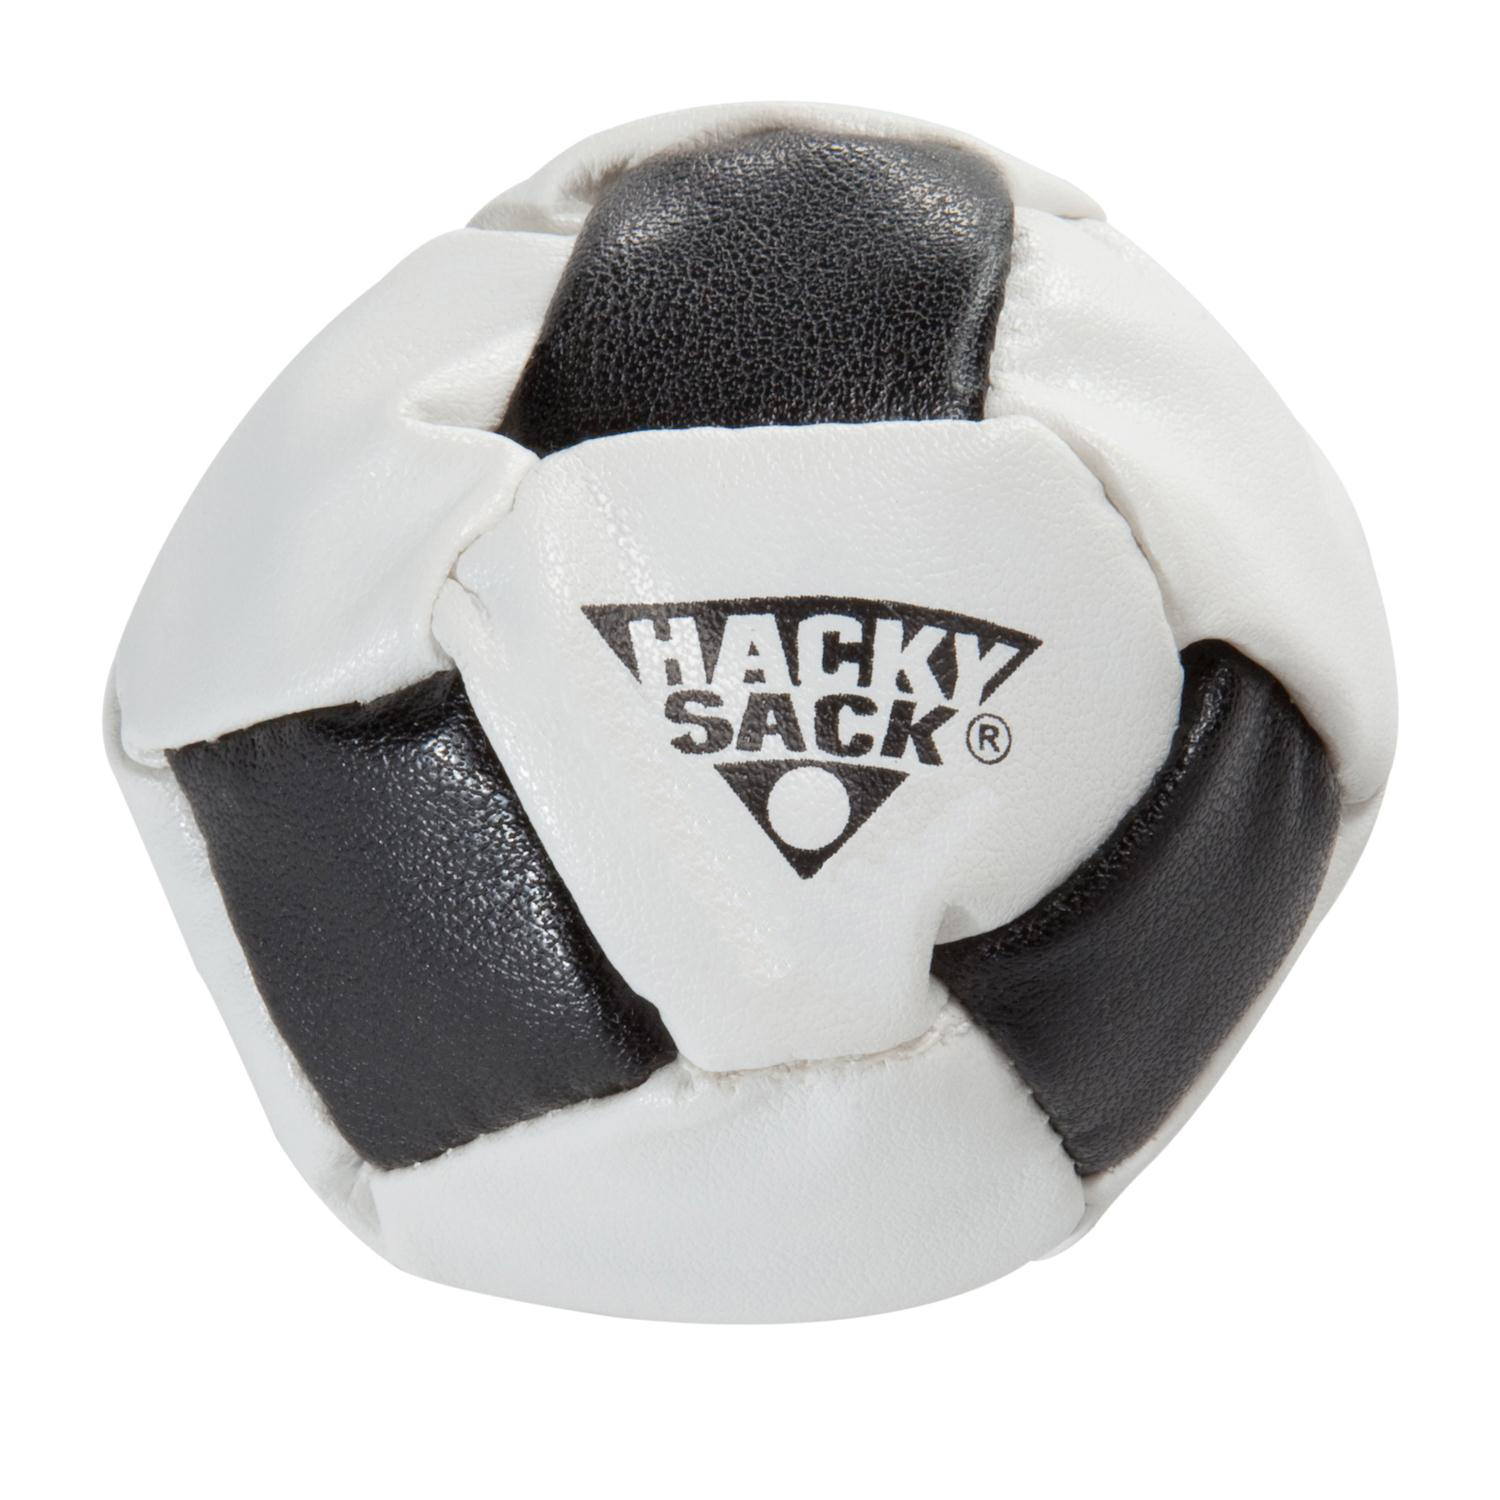 the hacky sack